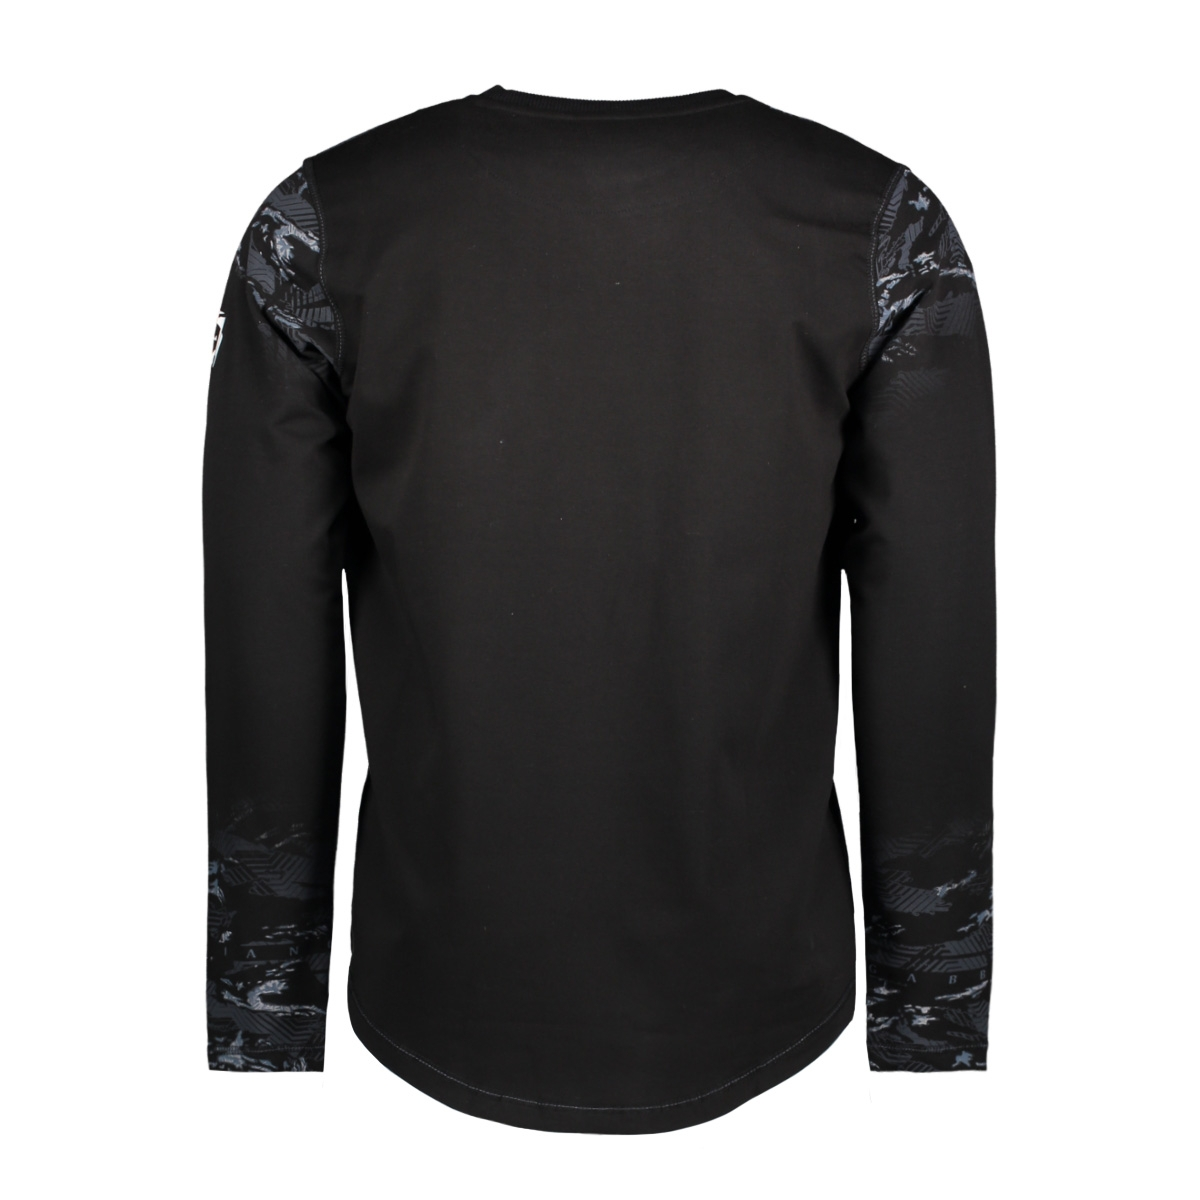 76139 gabbiano t-shirt black